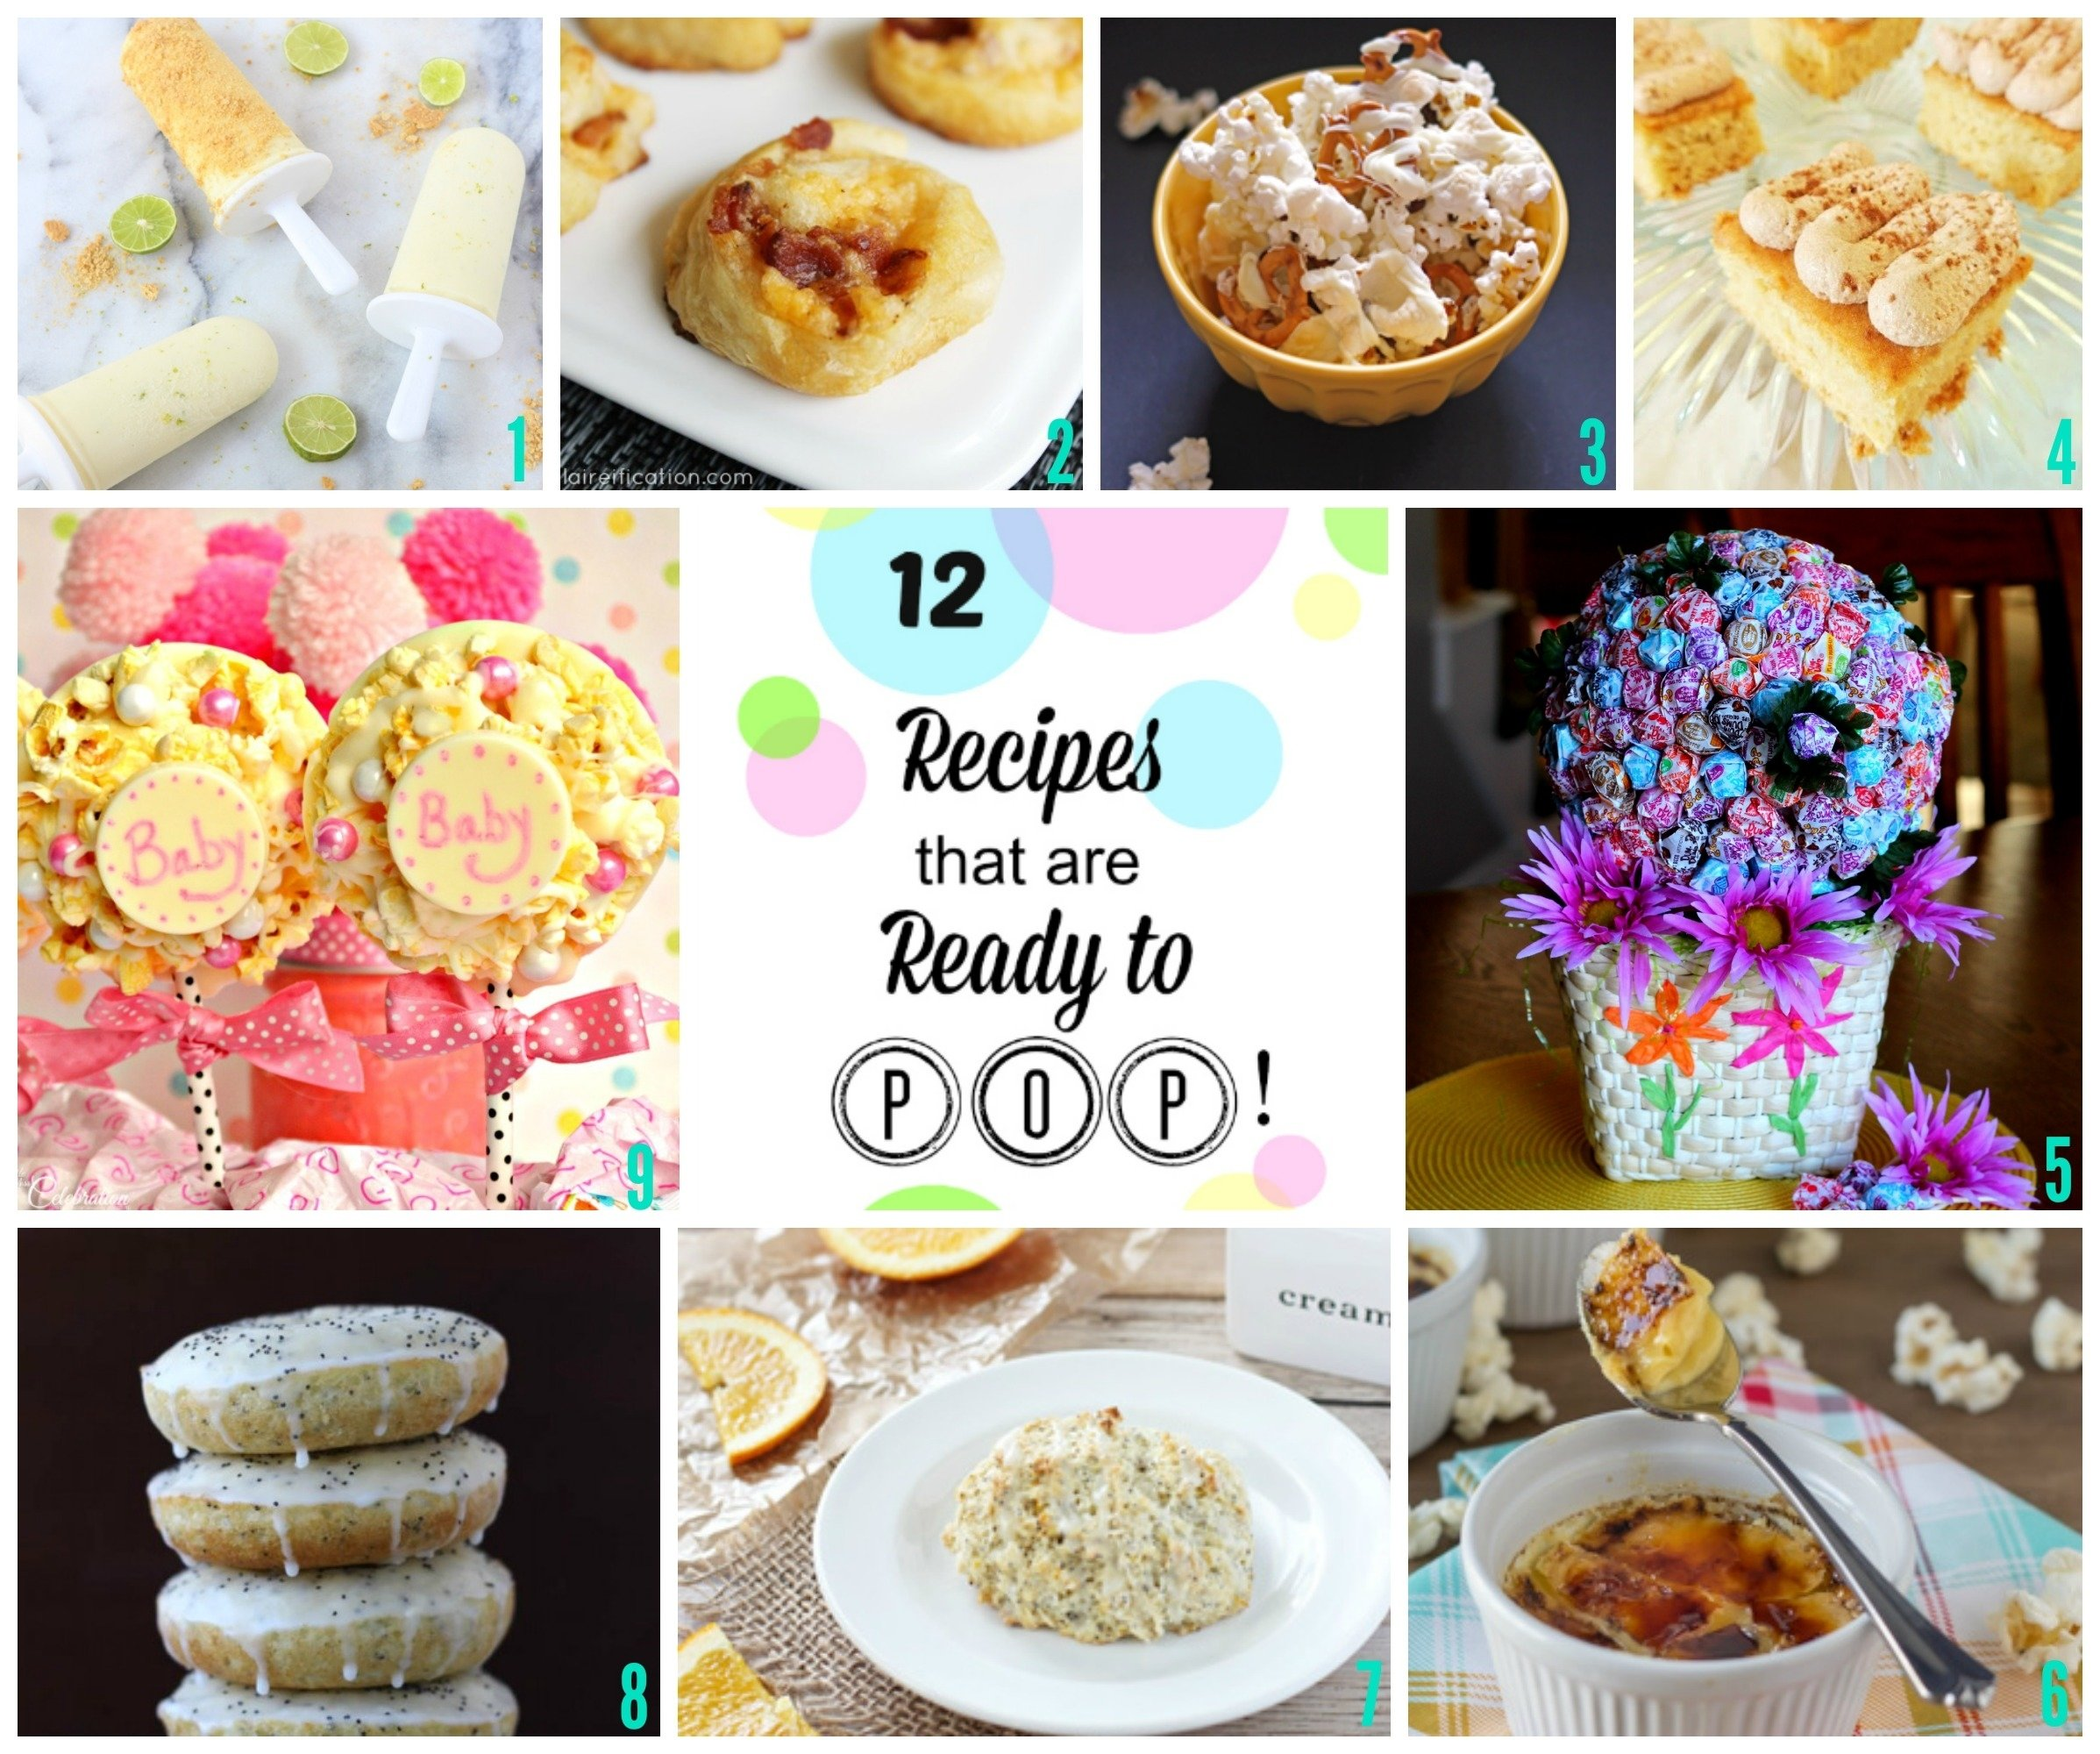 10 Attractive About To Pop Baby Shower Ideas 12 baby shower ideas ready to pop at littlemisscelebration 2020